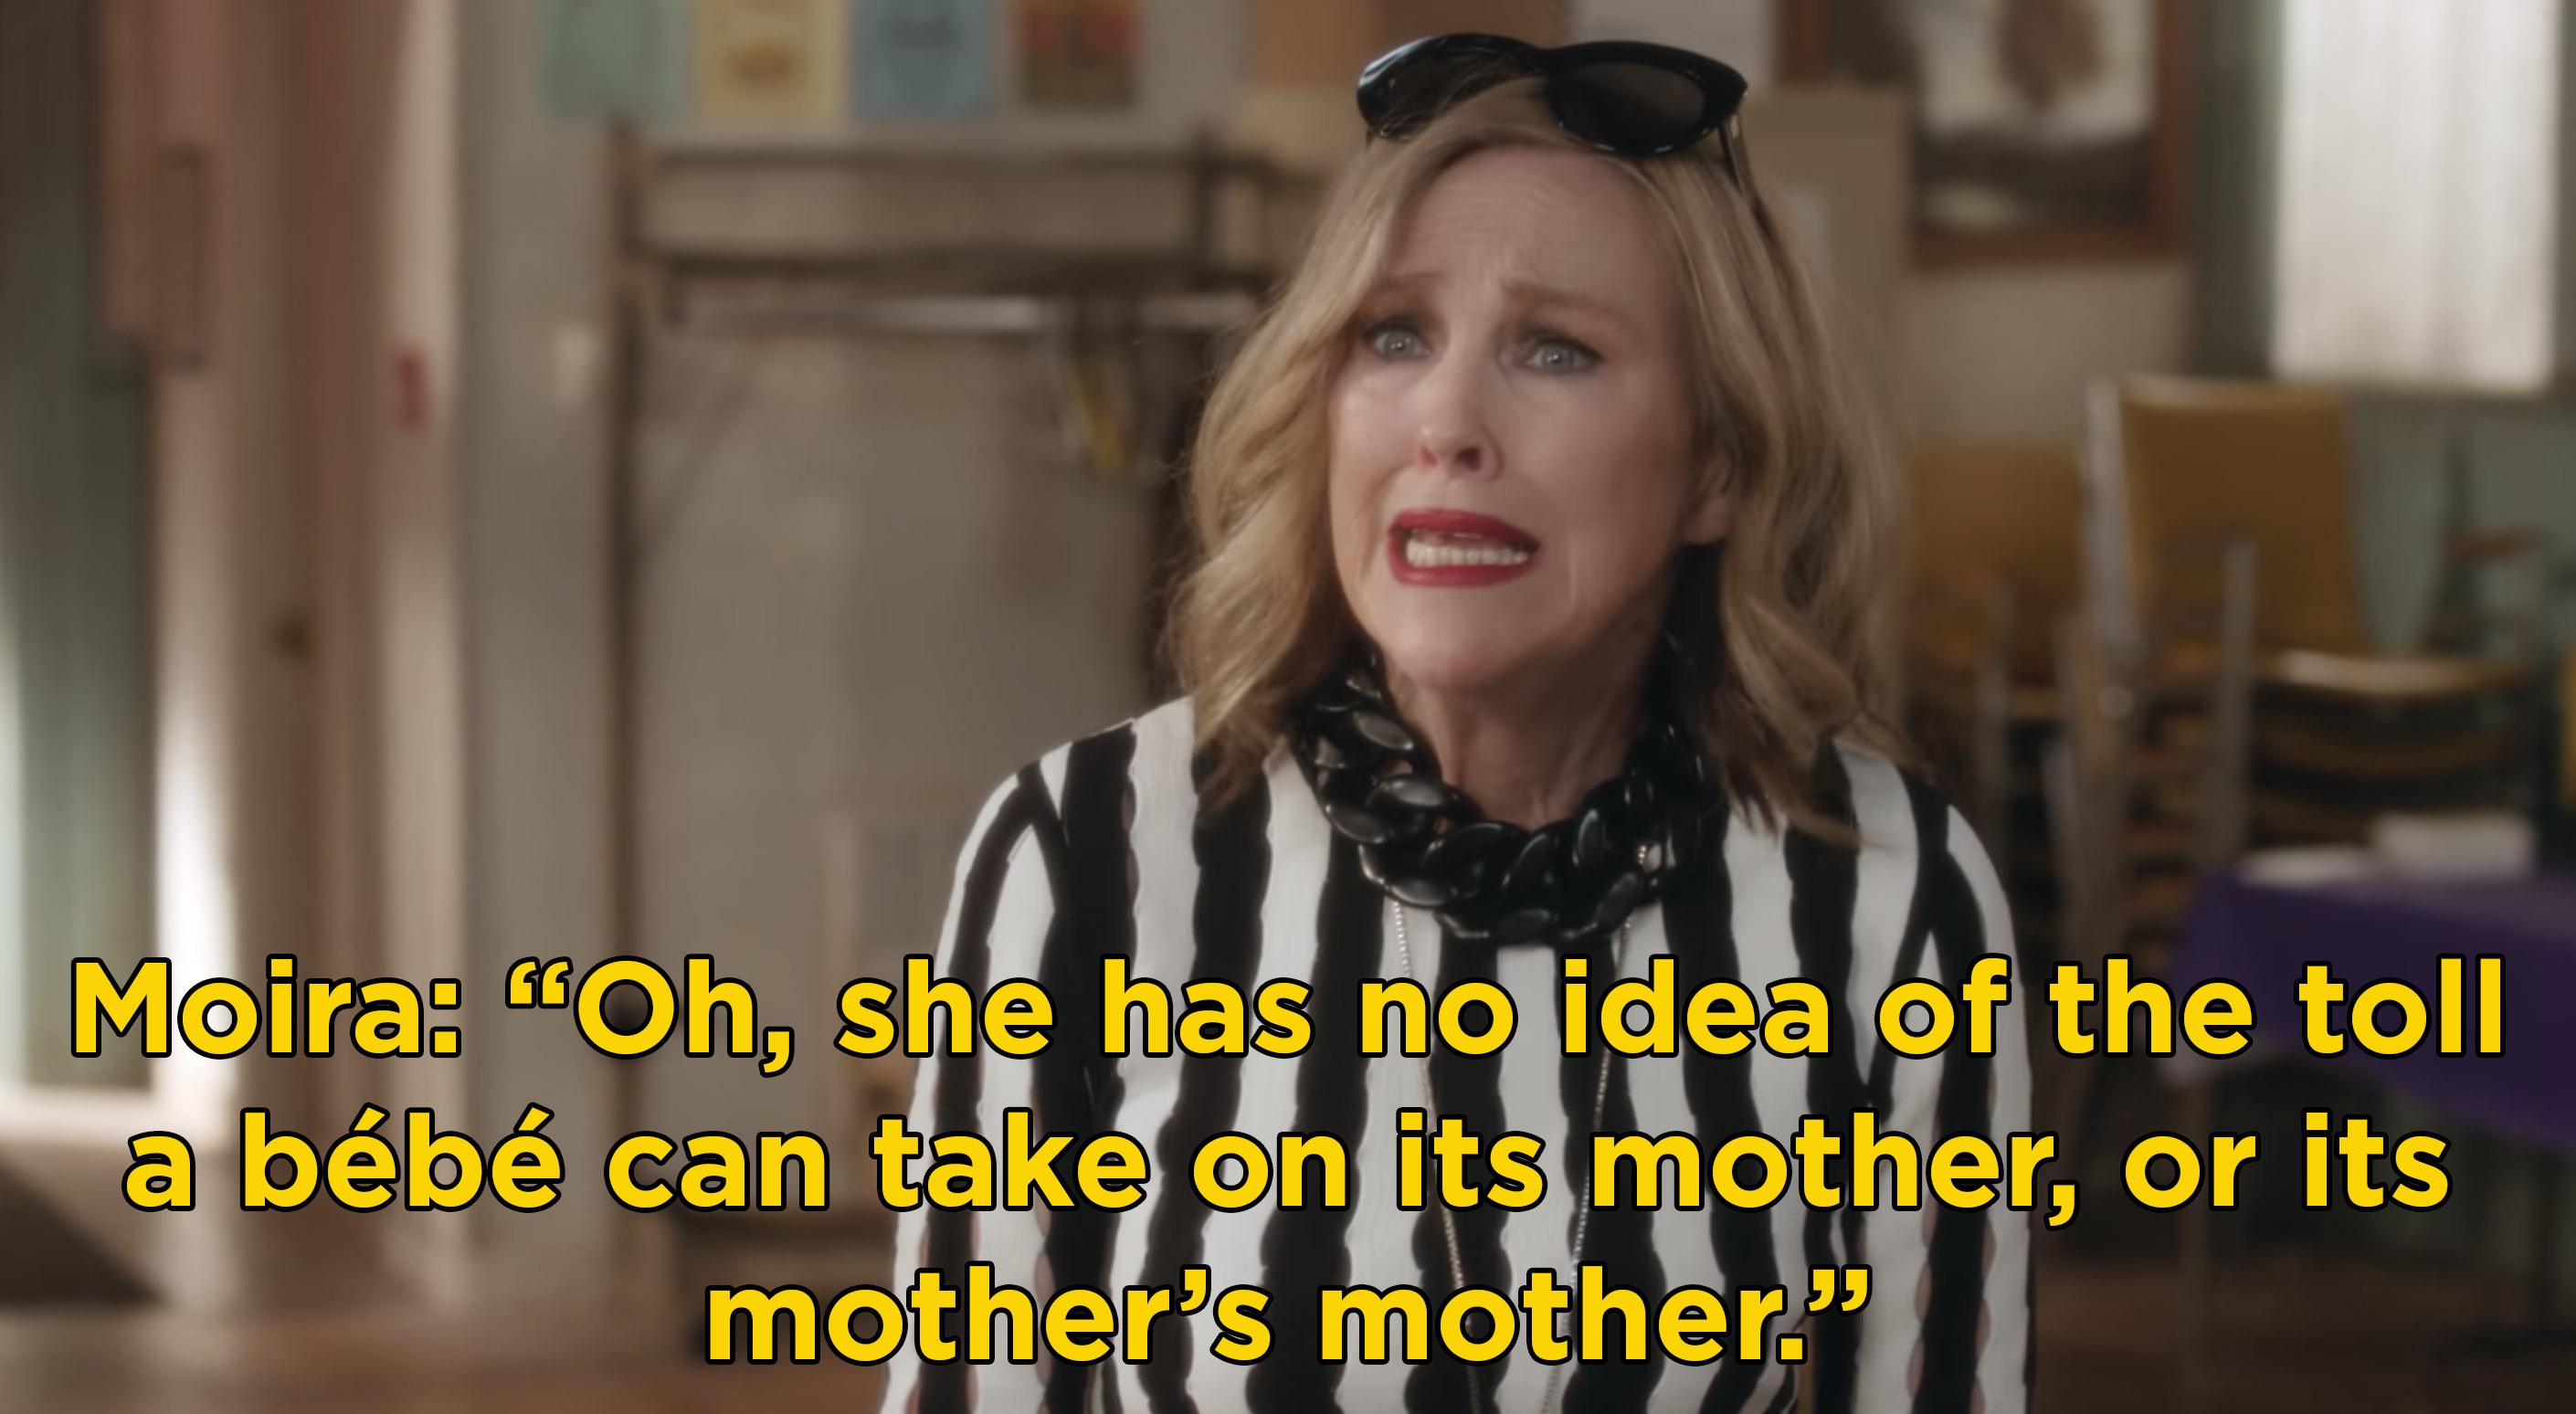 """Moira saying, """"Oh, she has no idea of the toll a bébé can take on its mother, or its mother's mother"""""""